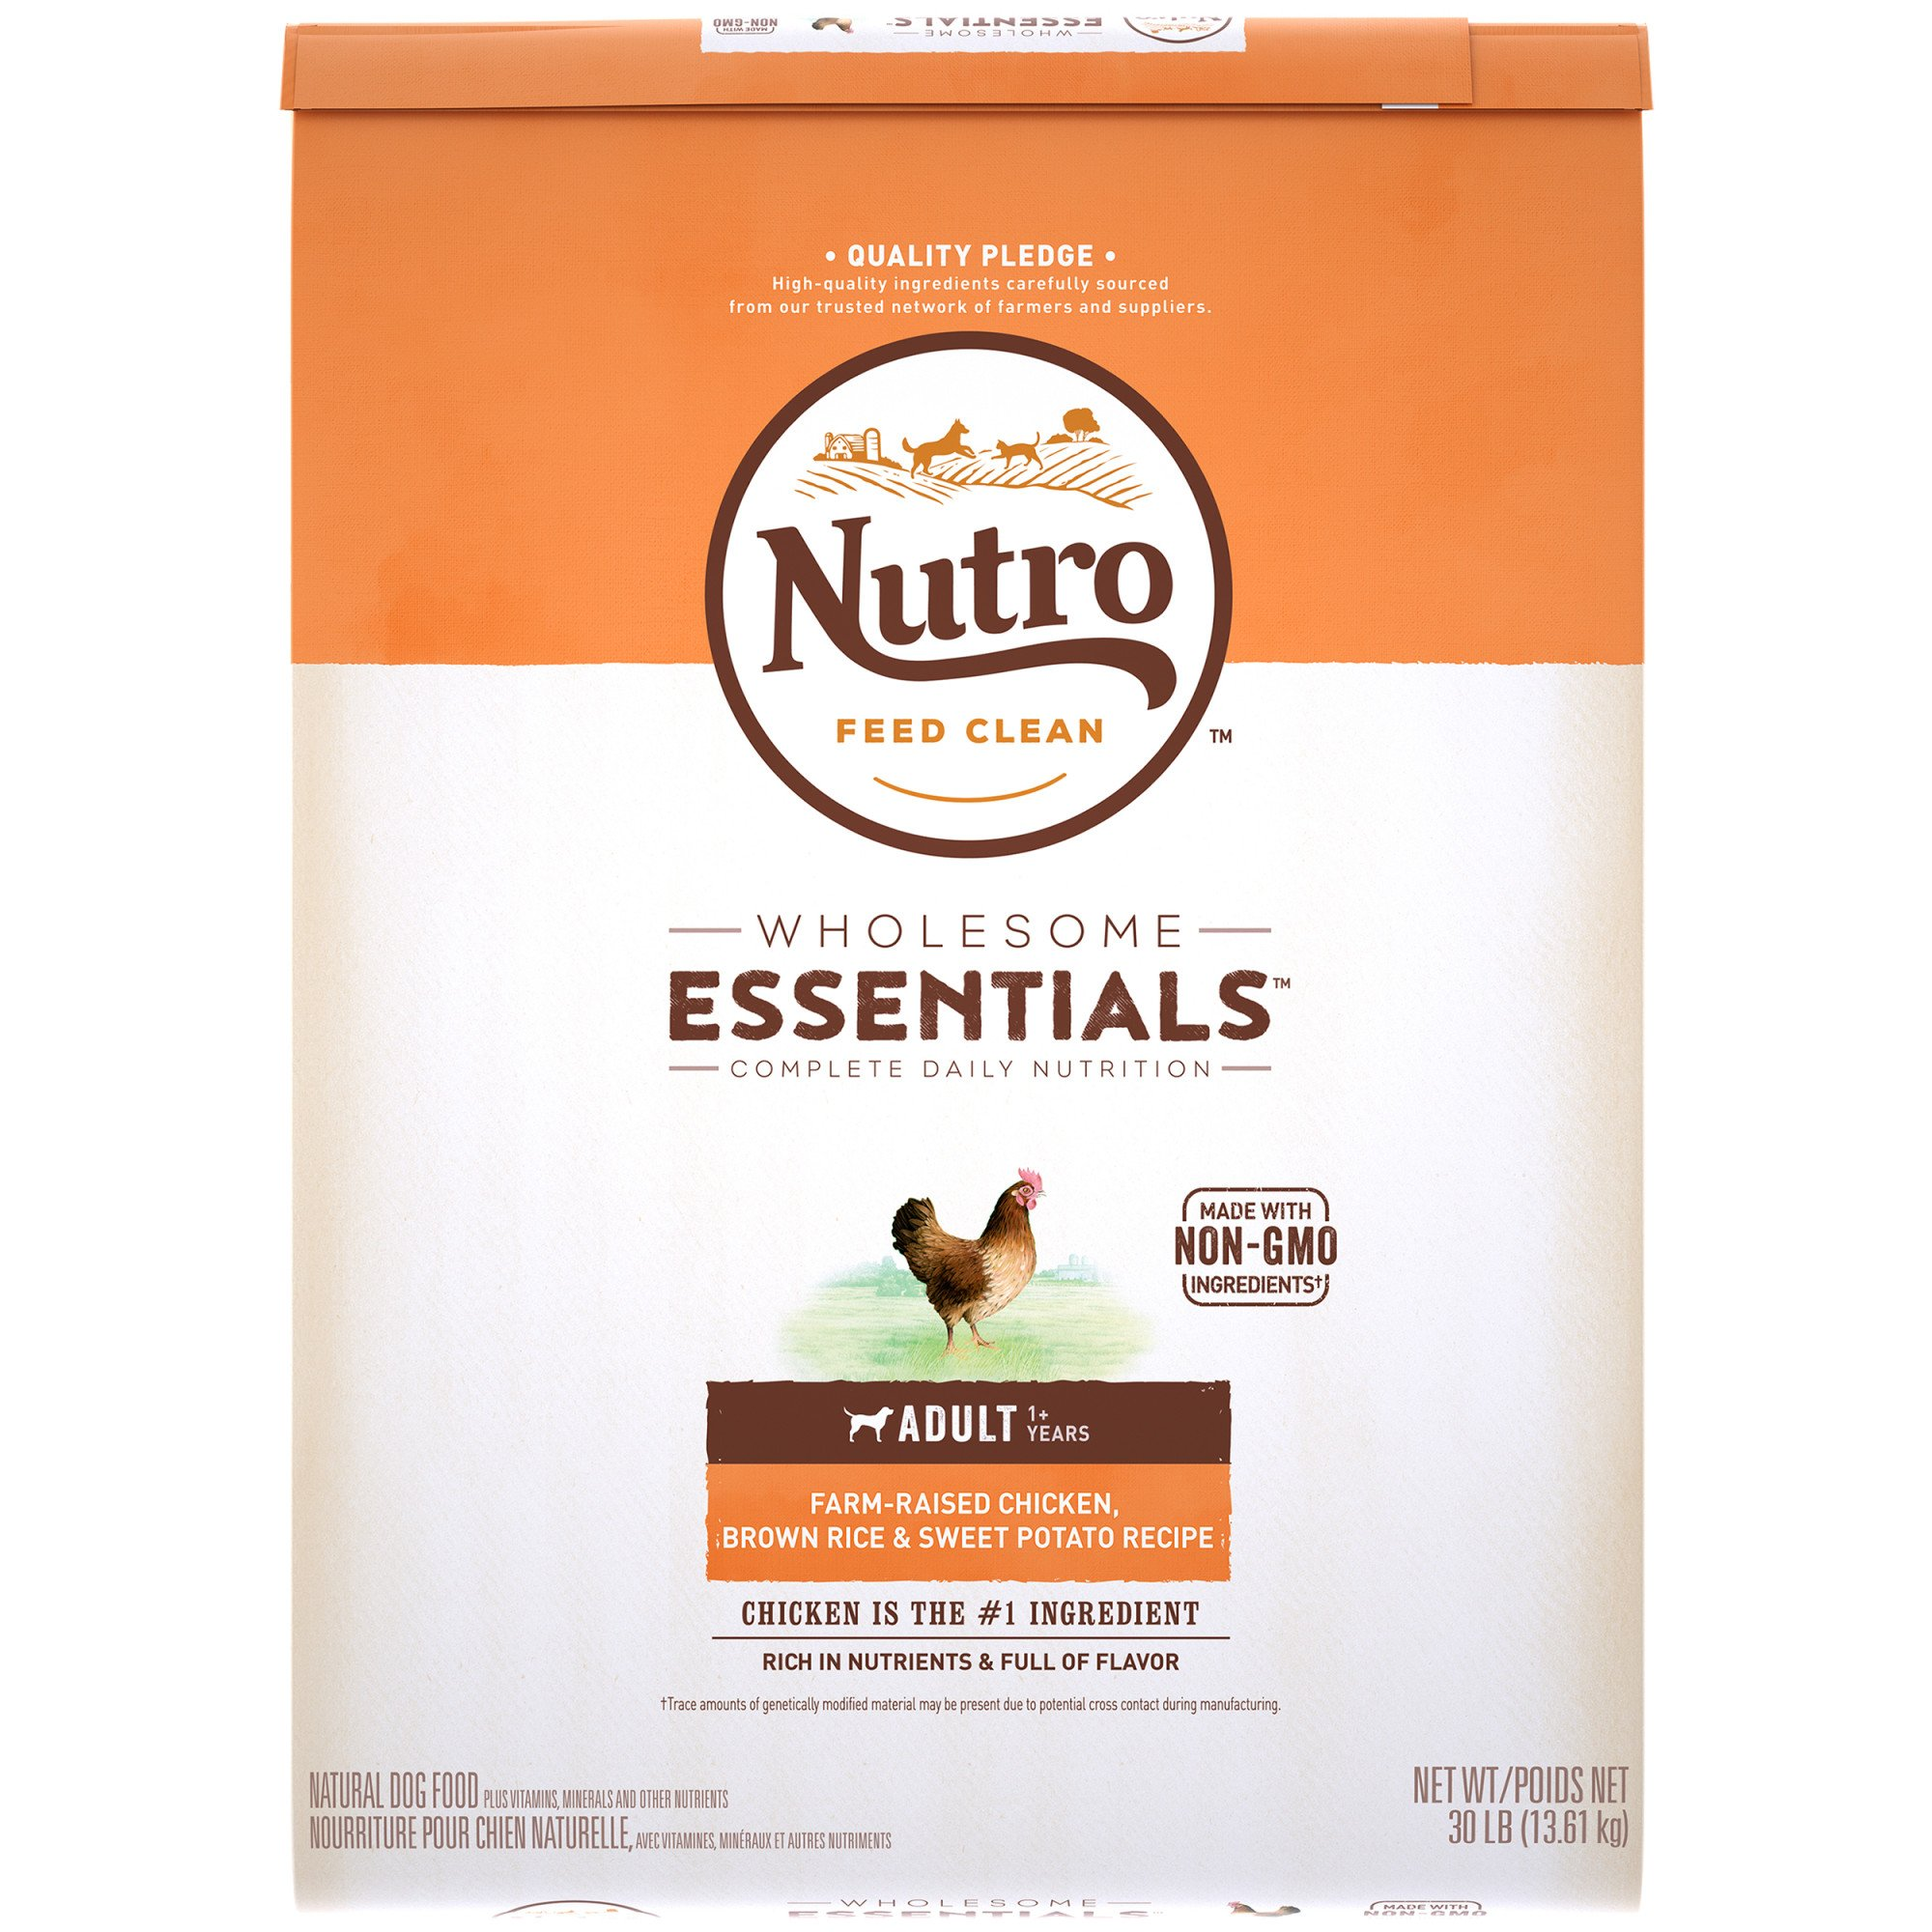 Nutro Wholesome Essentials Adult Farm-Raised Chicken, Brown Rice & Sweet Potato Dog Food Recipe